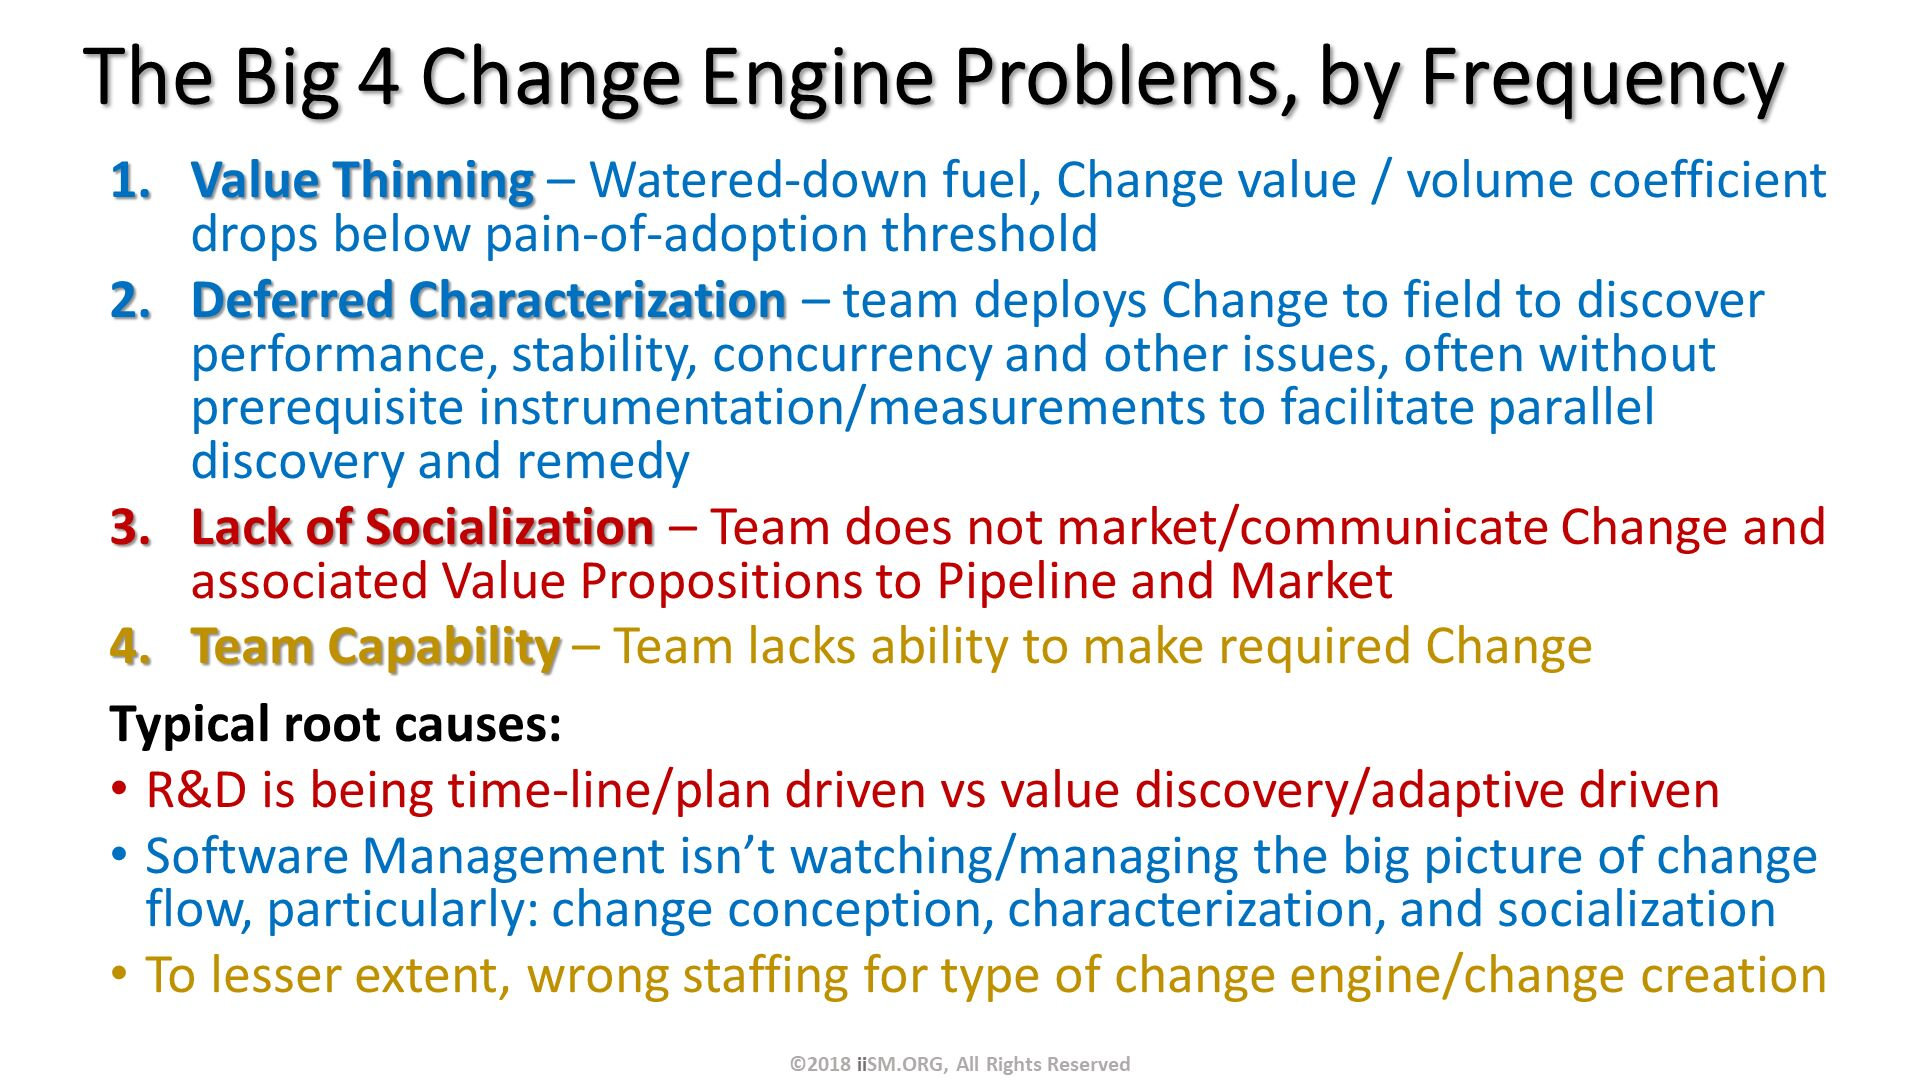 The Big 4 Change Engine Problems, by Frequency. Value Thinning – Watered-down fuel, Change value / volume coefficient drops below pain-of-adoption threshold Deferred Characterization – team deploys Change to field to discover performance, stability, concurrency and other issues, often without prerequisite instrumentation/measurements to facilitate parallel discovery and remedy Lack of Socialization – Team does not market/communicate Change and associated Value Propositions to Pipeline and Market Team Capability – Team lacks ability to make required Change  Typical root causes:  R&D is being time-line/plan driven vs value discovery/adaptive driven Software Management isn't watching/managing the big picture of change flow, particularly: change conception, characterization, and socialization To lesser extent, wrong staffing for type of change engine/change creation. ©2018 iiSM.ORG, All Rights Reserved.